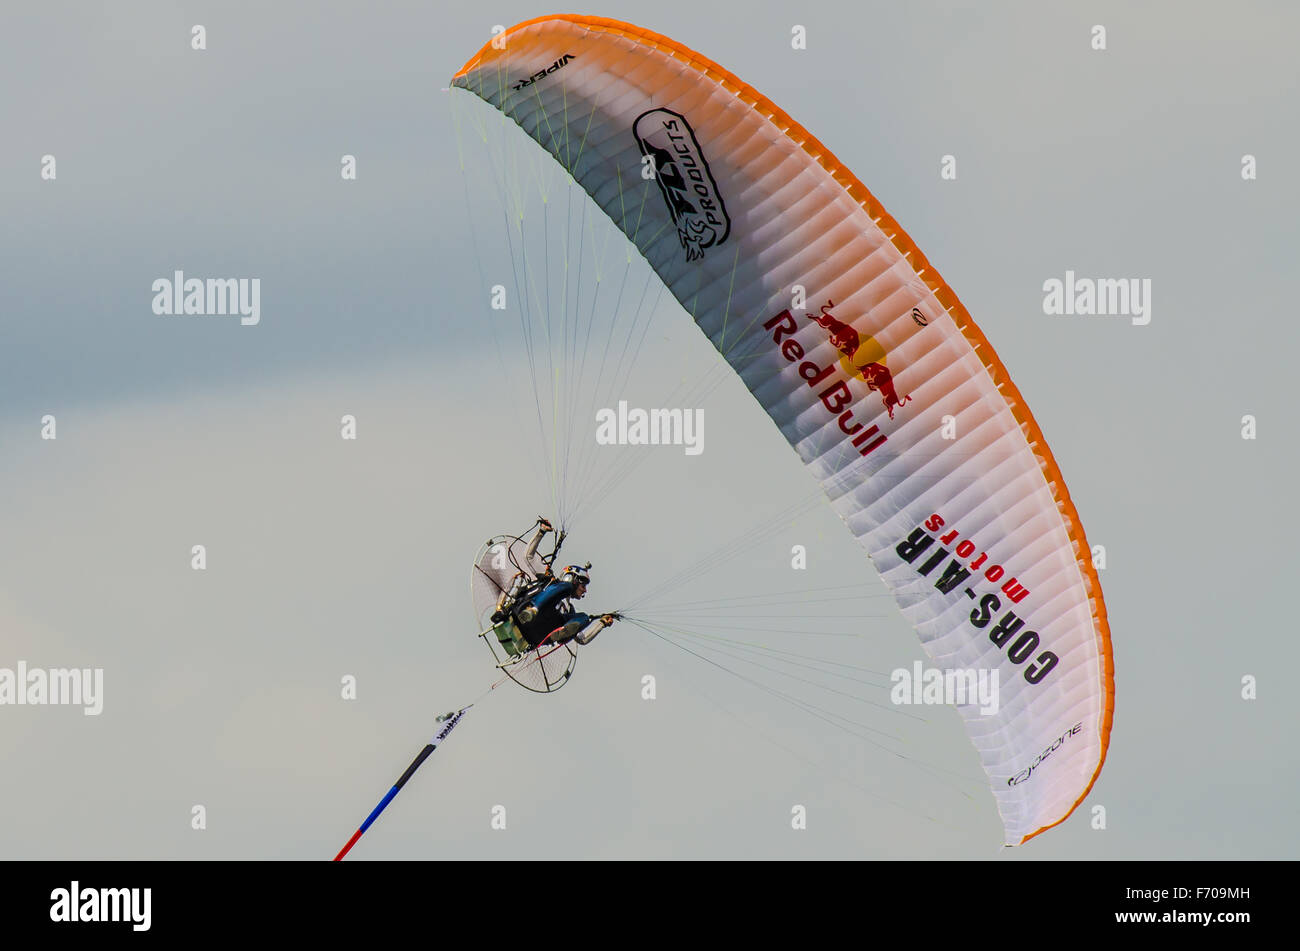 Pal Takats was part of the RedBull Air-Race series performing paramotor displays using an Ozone Viper 2 - Stock Image